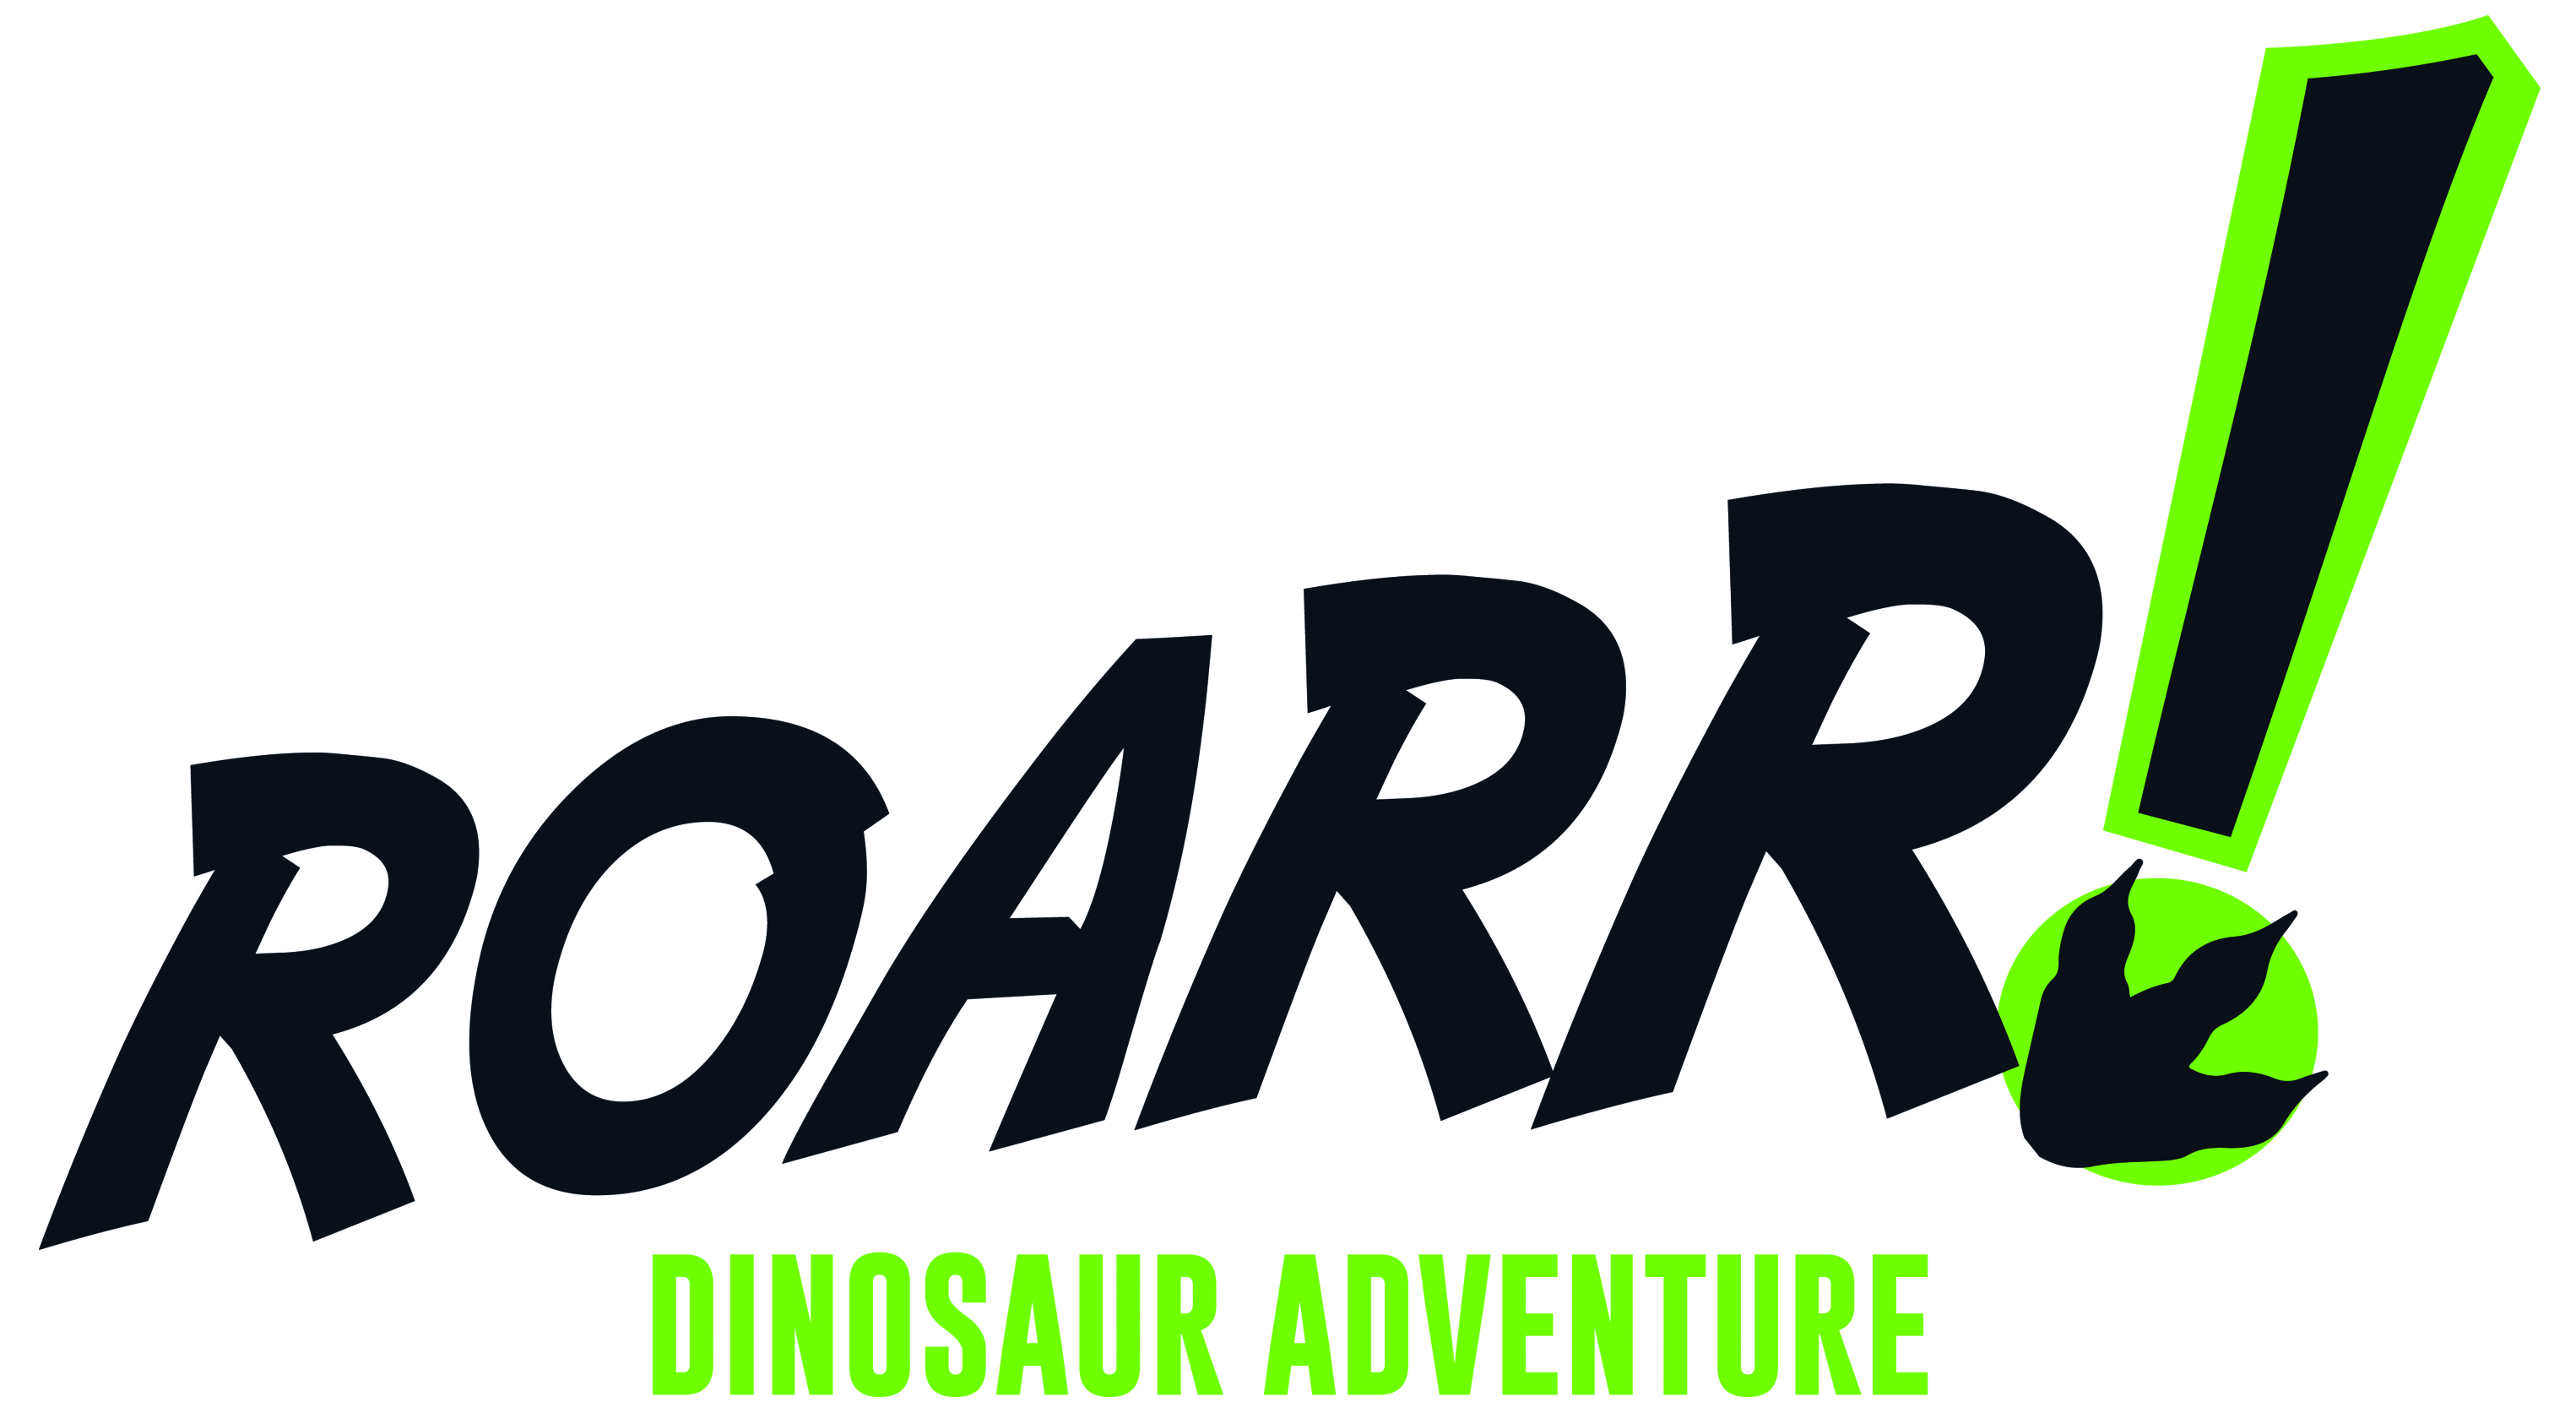 Link to https://www.roarrdinosauradventure.co.uk/